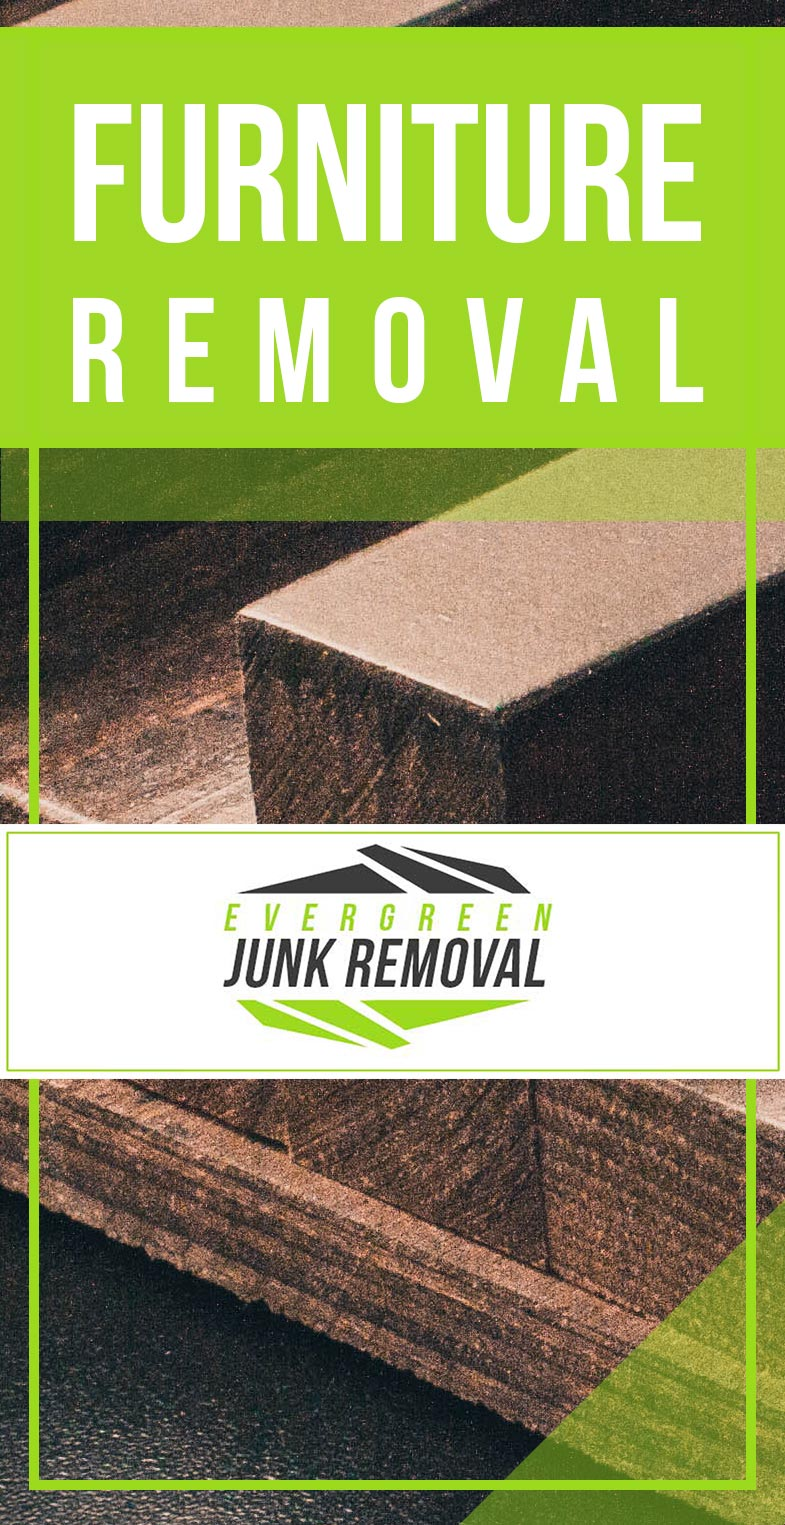 Junk Removal Highland Beach Furniture Removal